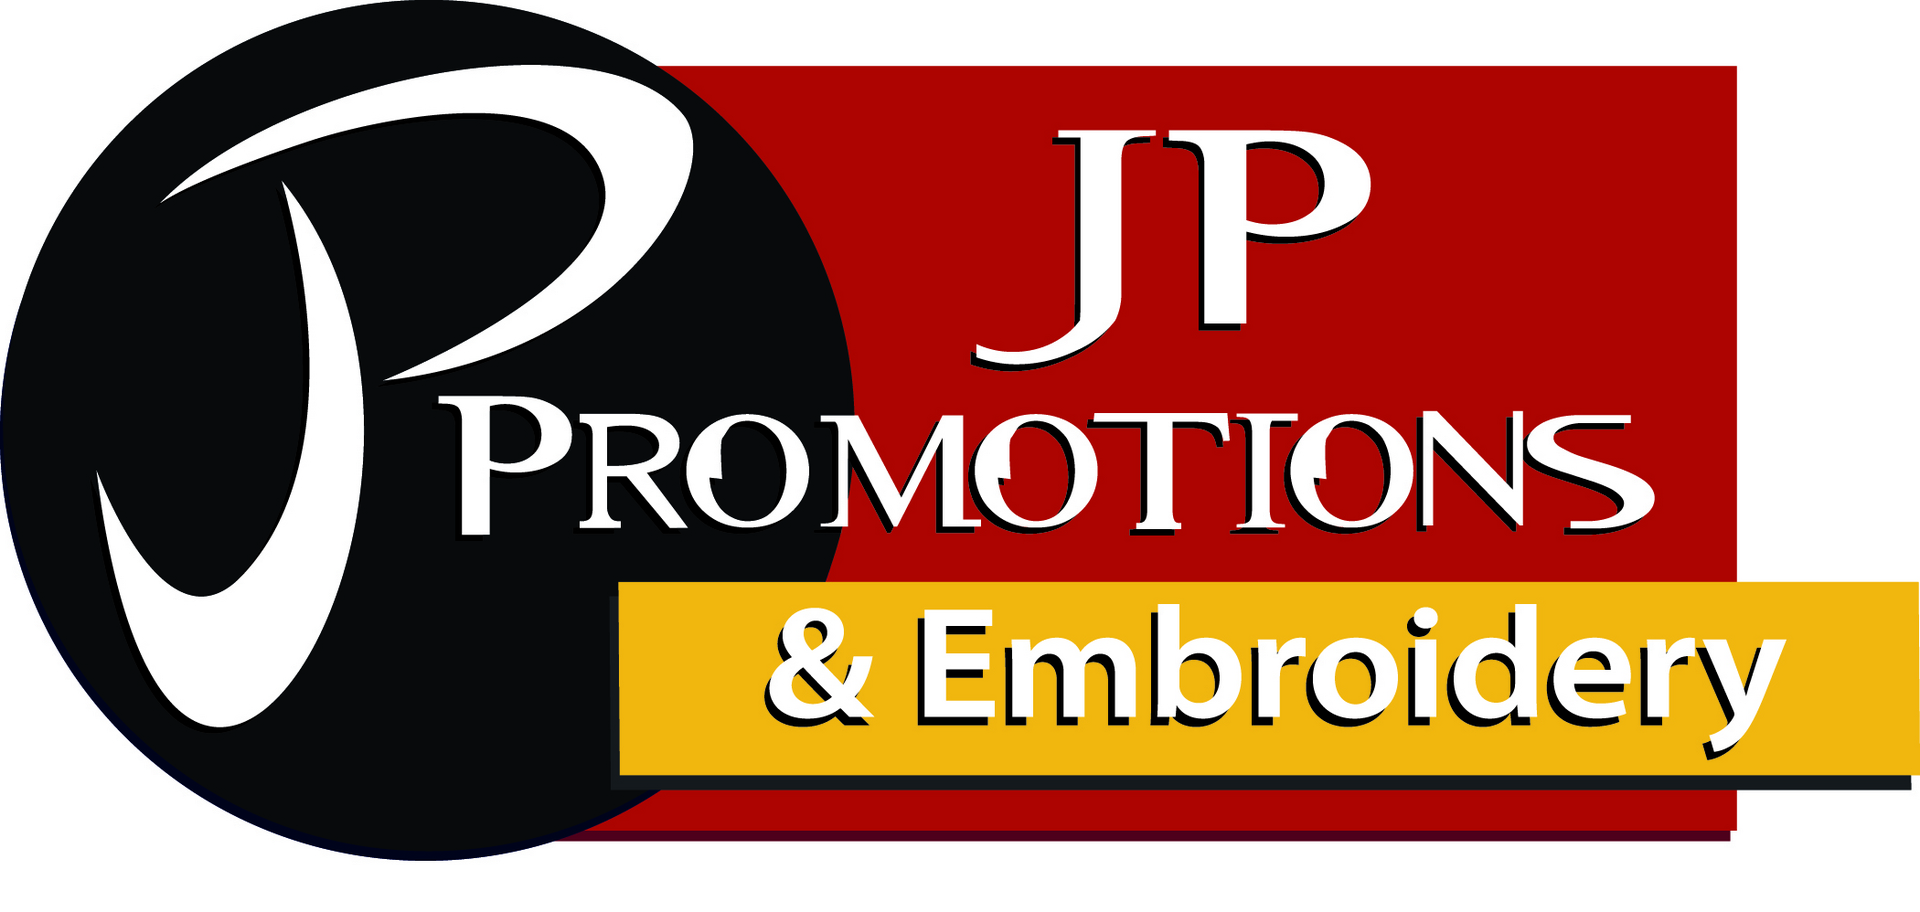 JP Promotions & Embroidery